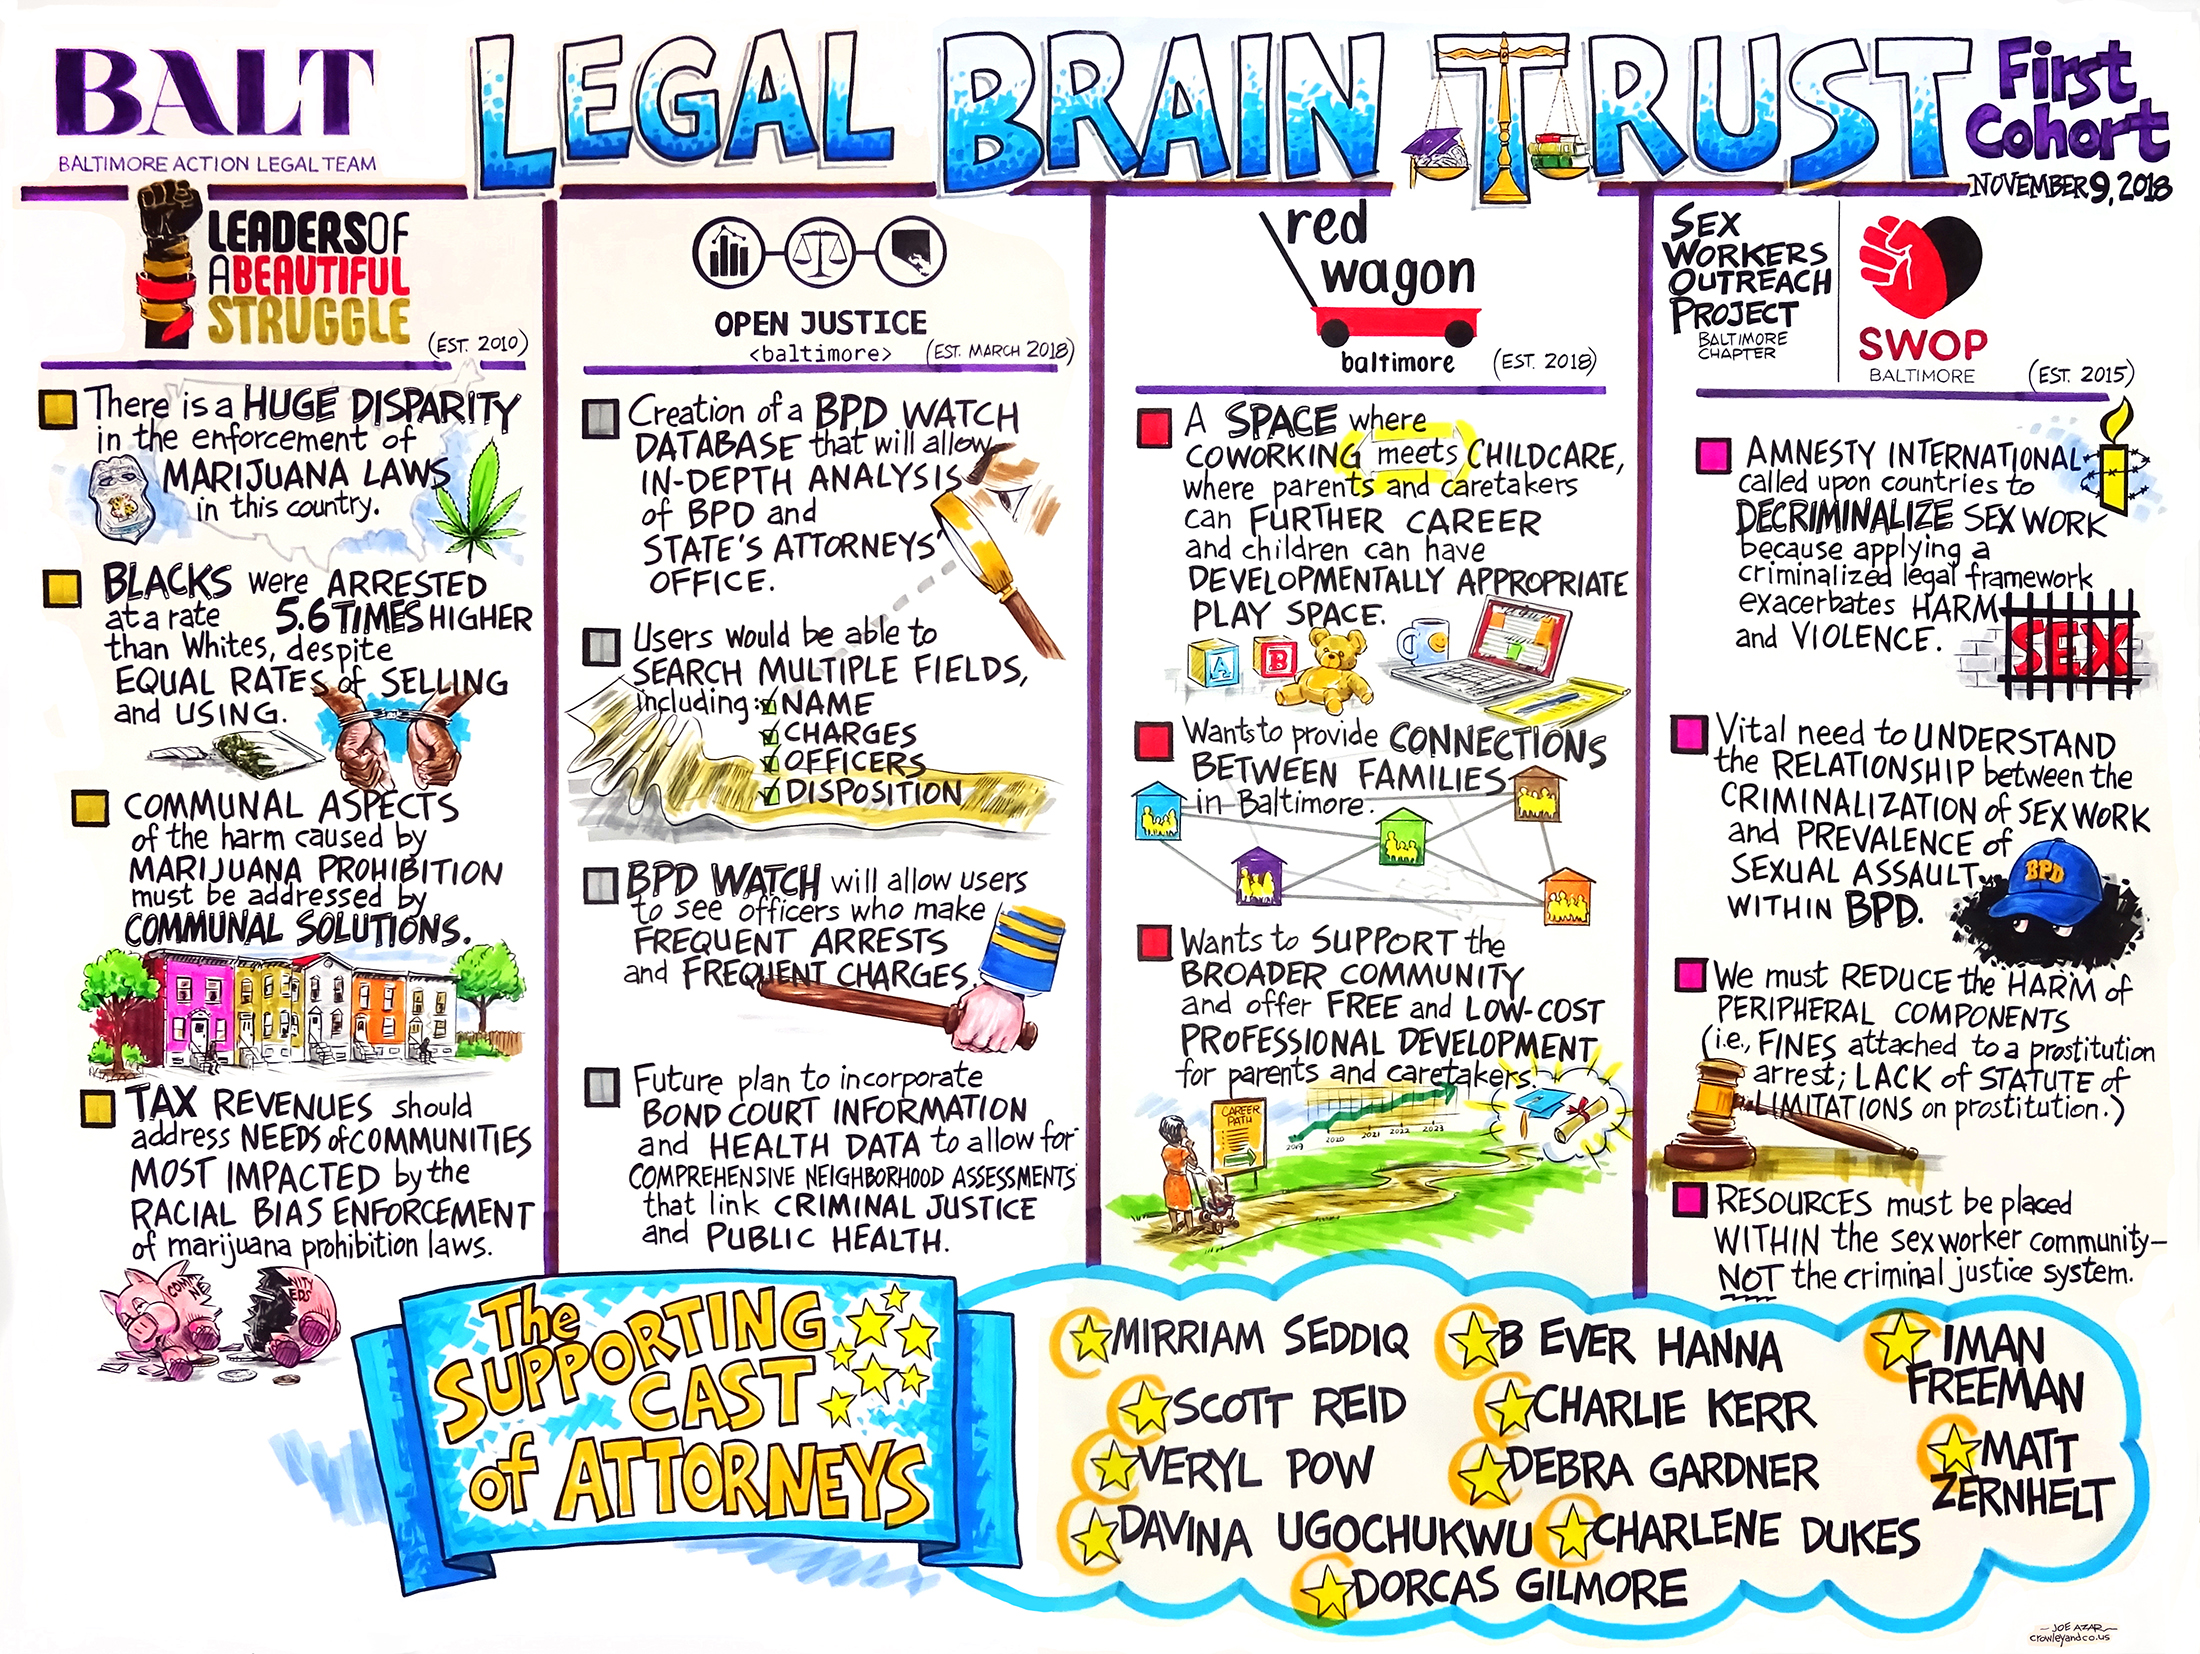 Graphic Illustration of BALT's First Legal Brain Trust Cohort